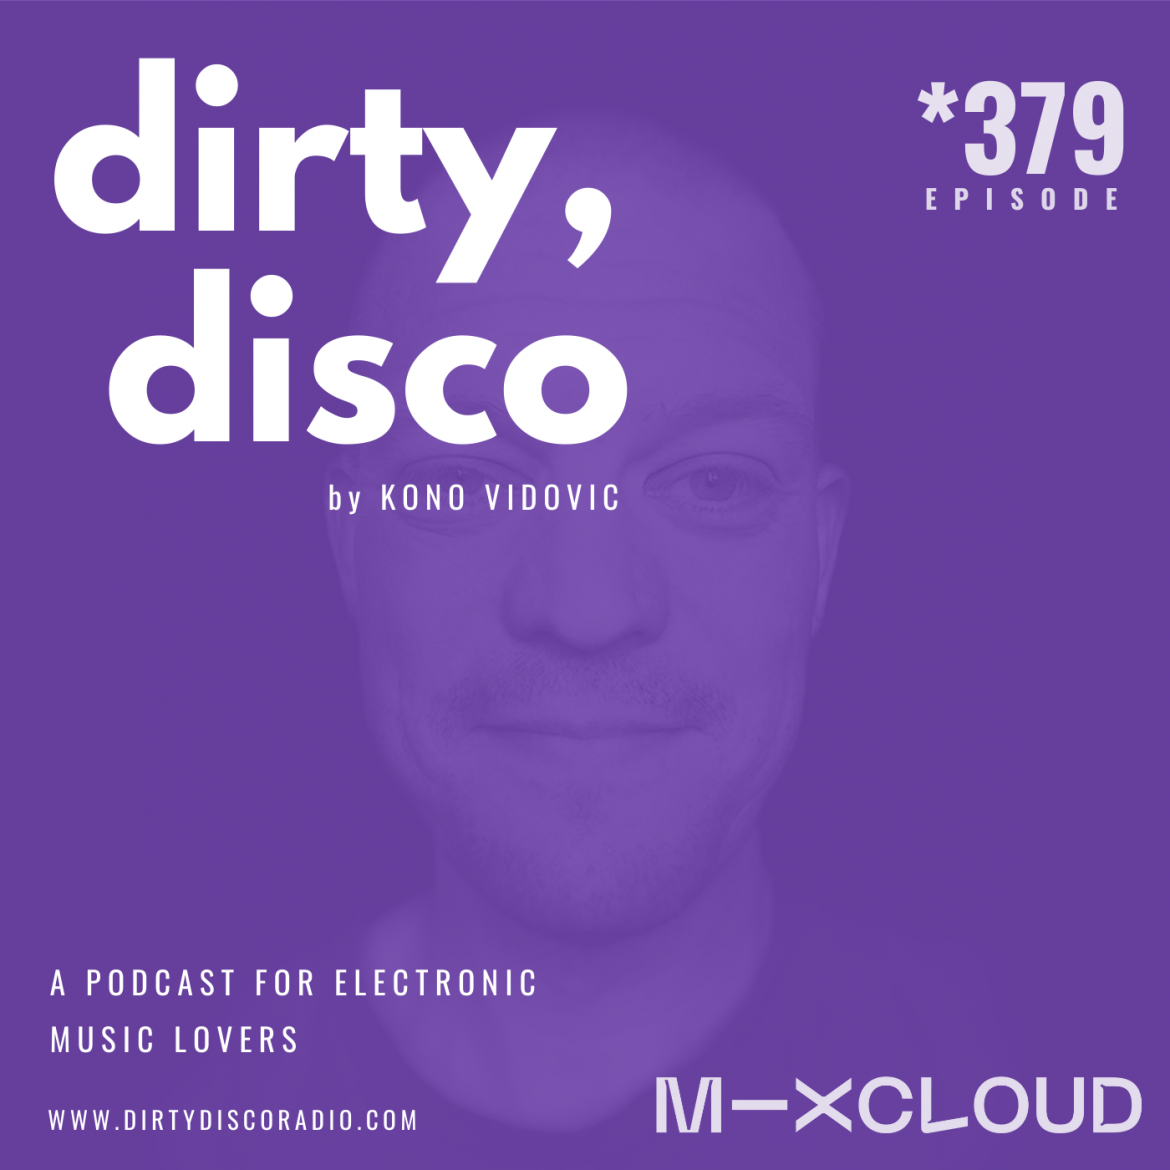 Locked-In-Music In Dirty Disco 379.